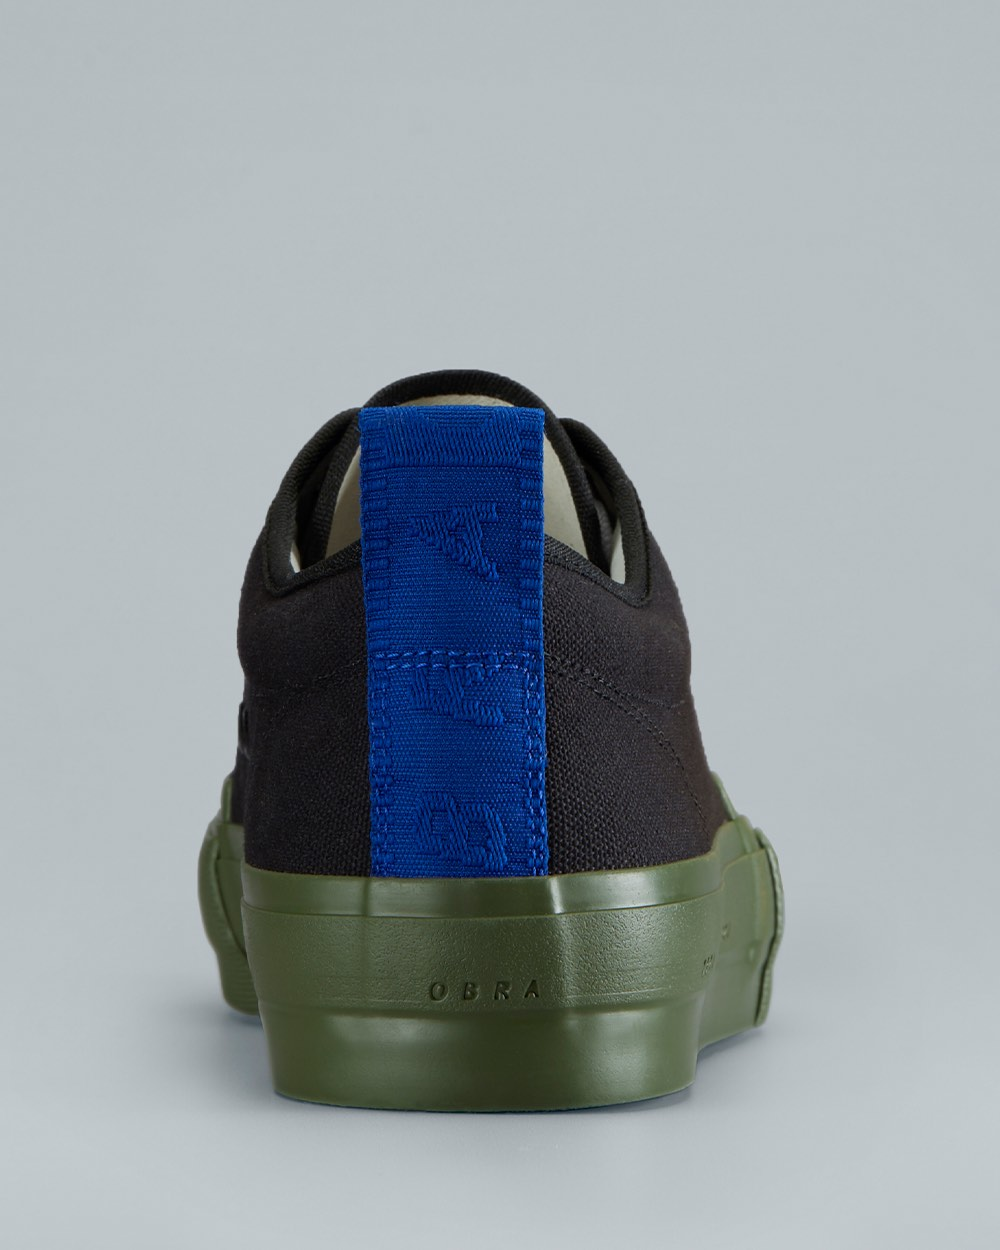 TERRA CANVAS LOW WRAP<br />Black/Army/OBRA Blue